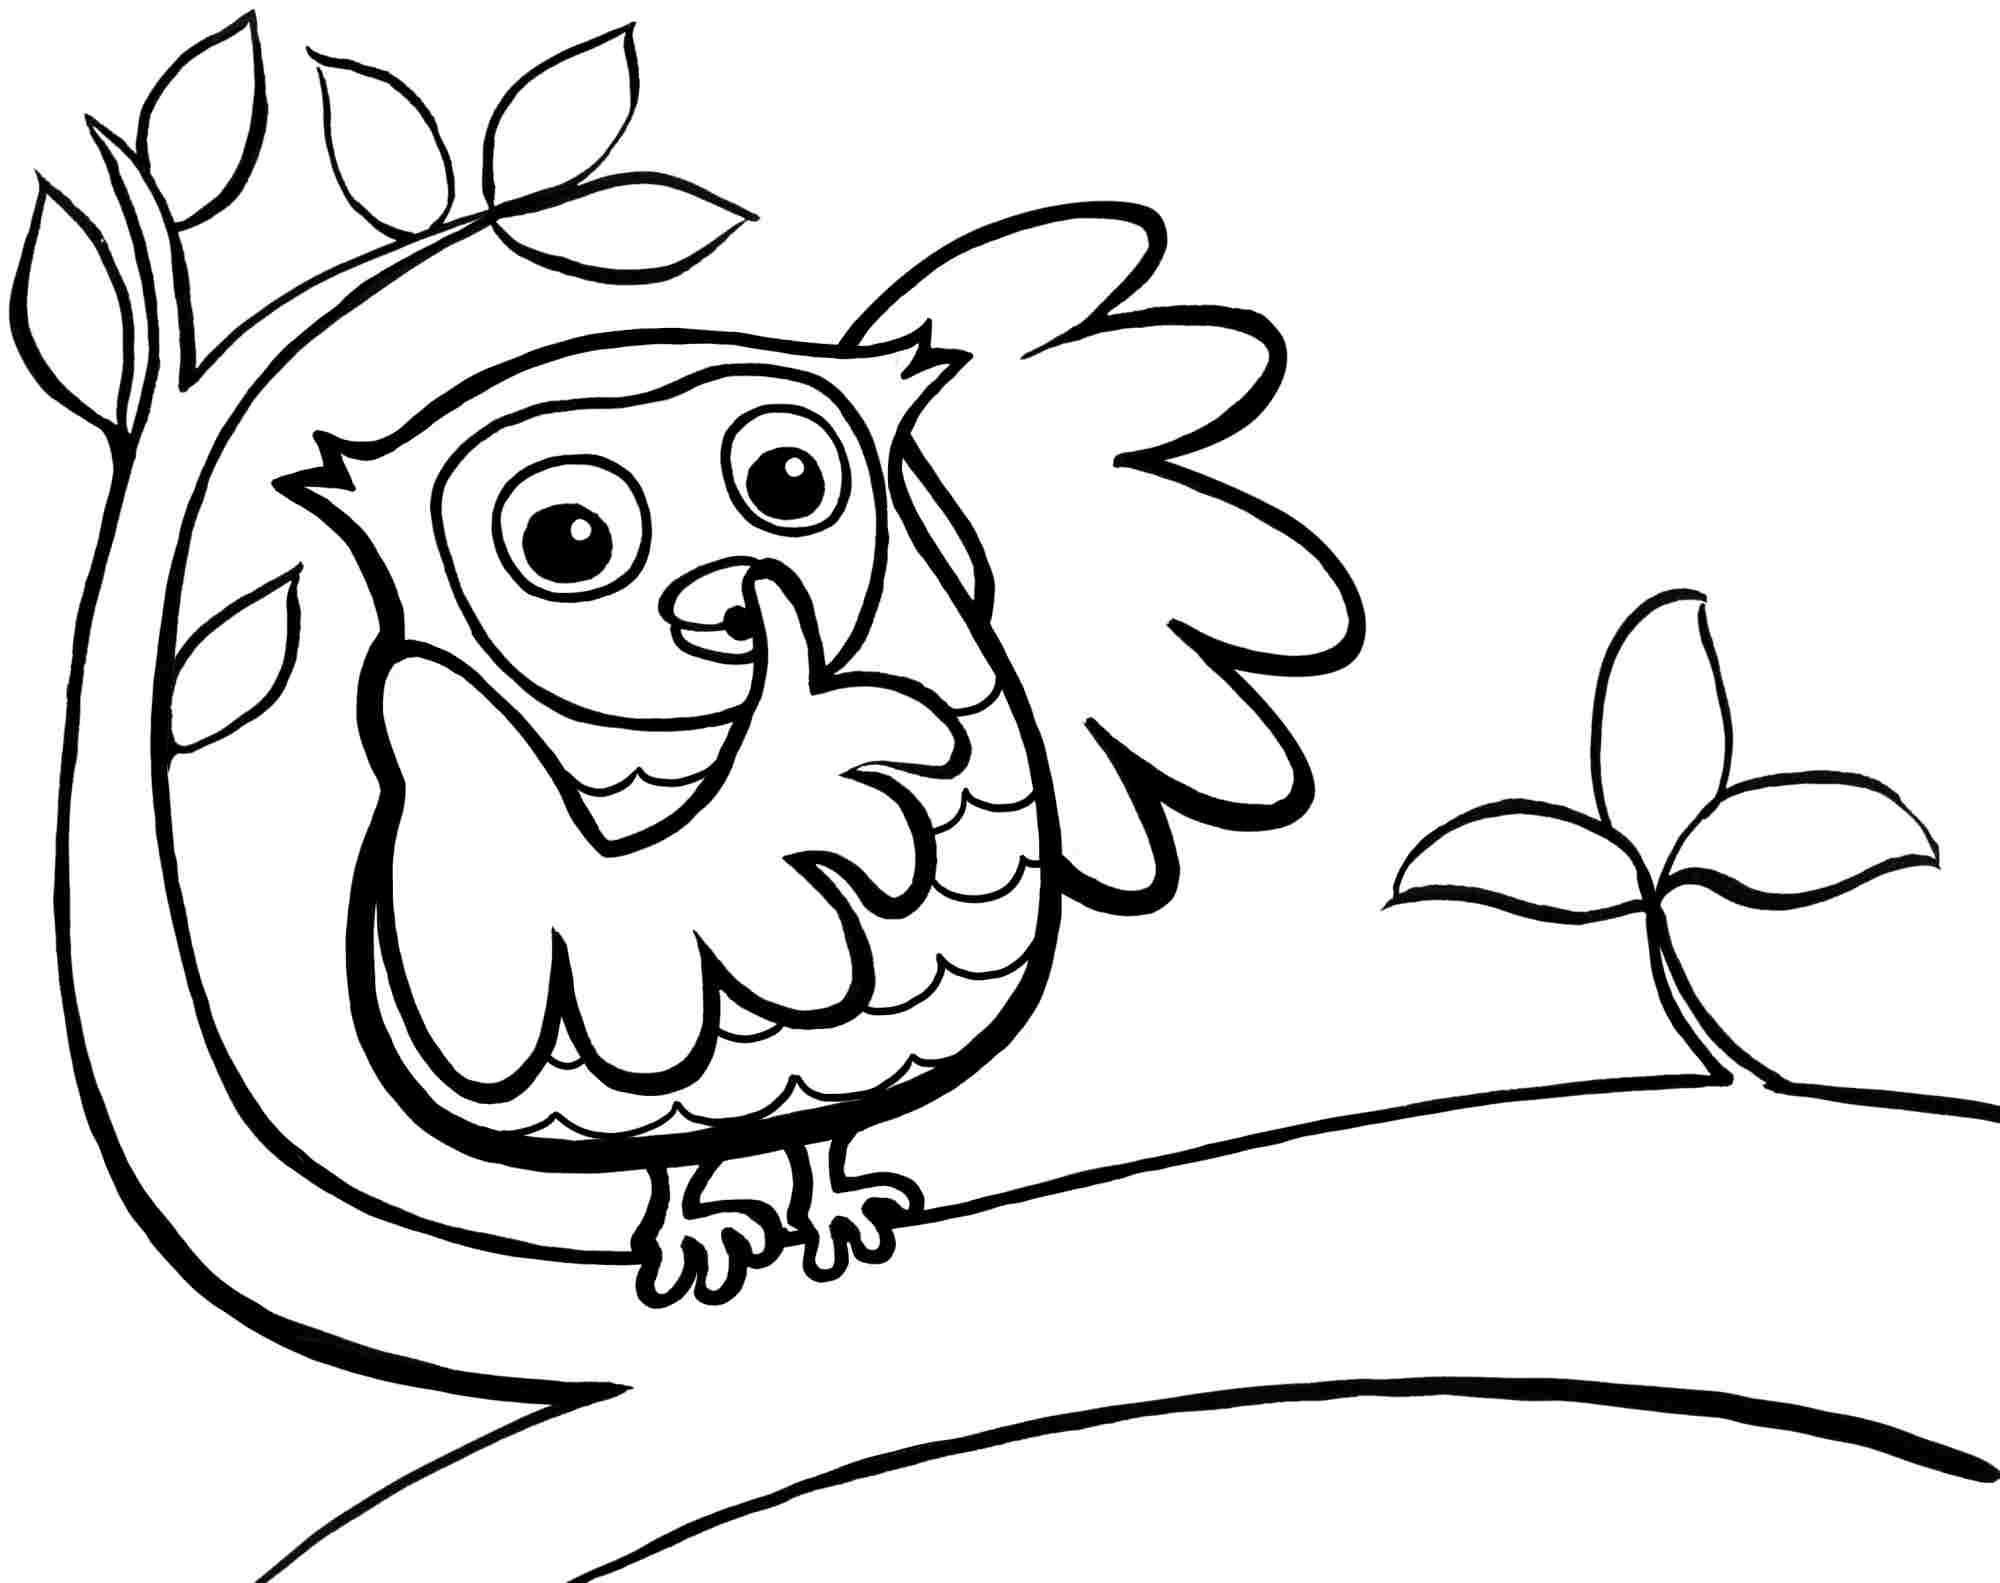 Cute Printable Owl Coloring Pages for Kids   360ColoringPages   free coloring pages for toddlers